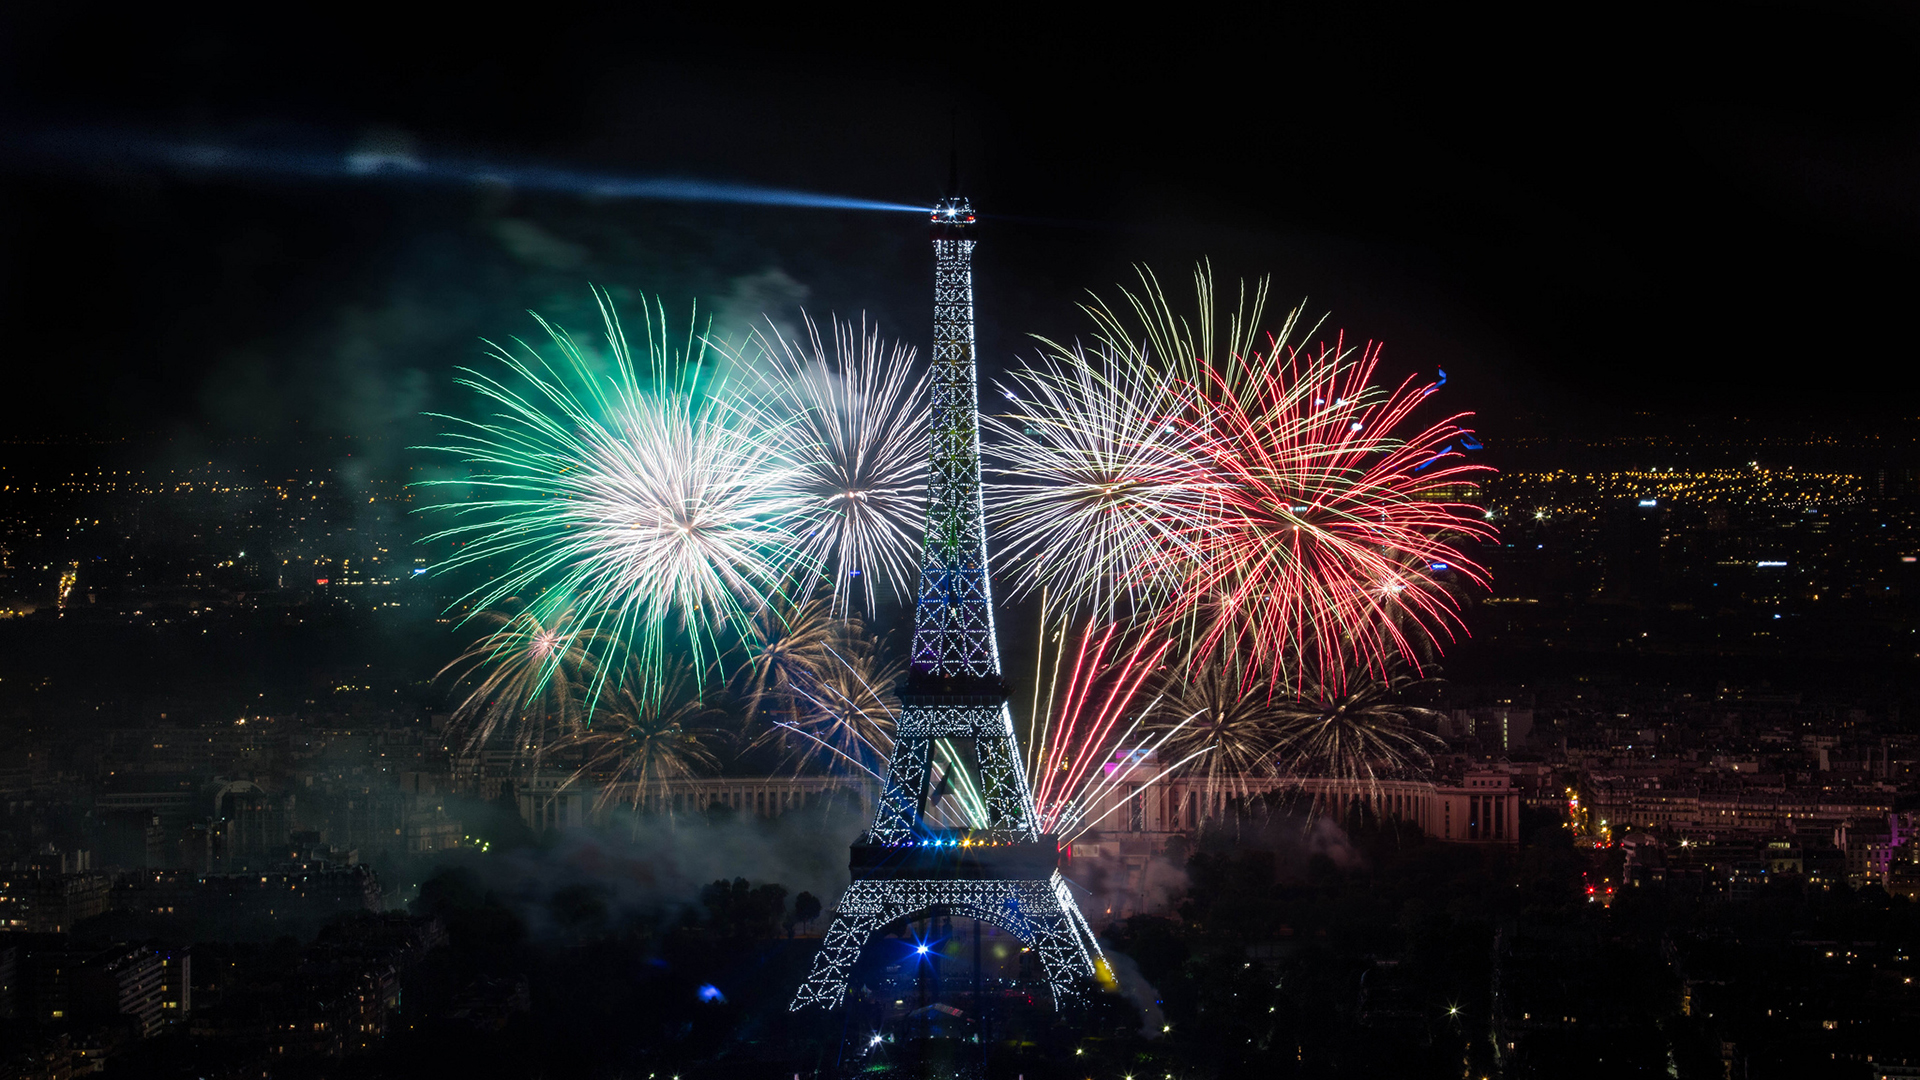 Eiffel Tower Paris Night Fireworks Wallpaper